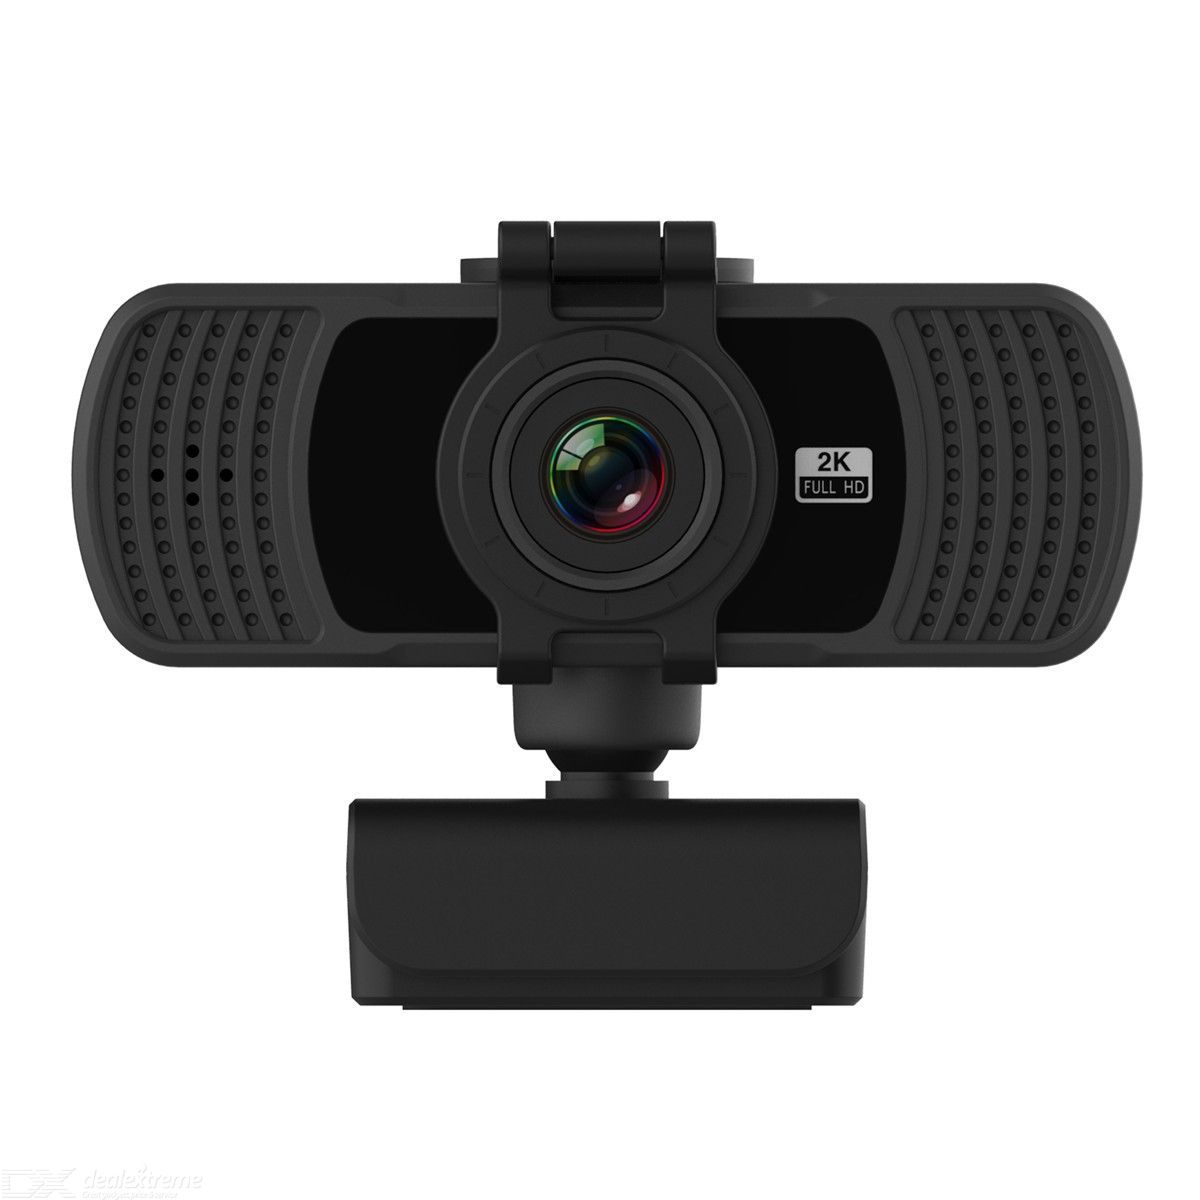 C6 400W Webcam Full HD 1080p 360D Rotary Joint USB Webcam with microphone